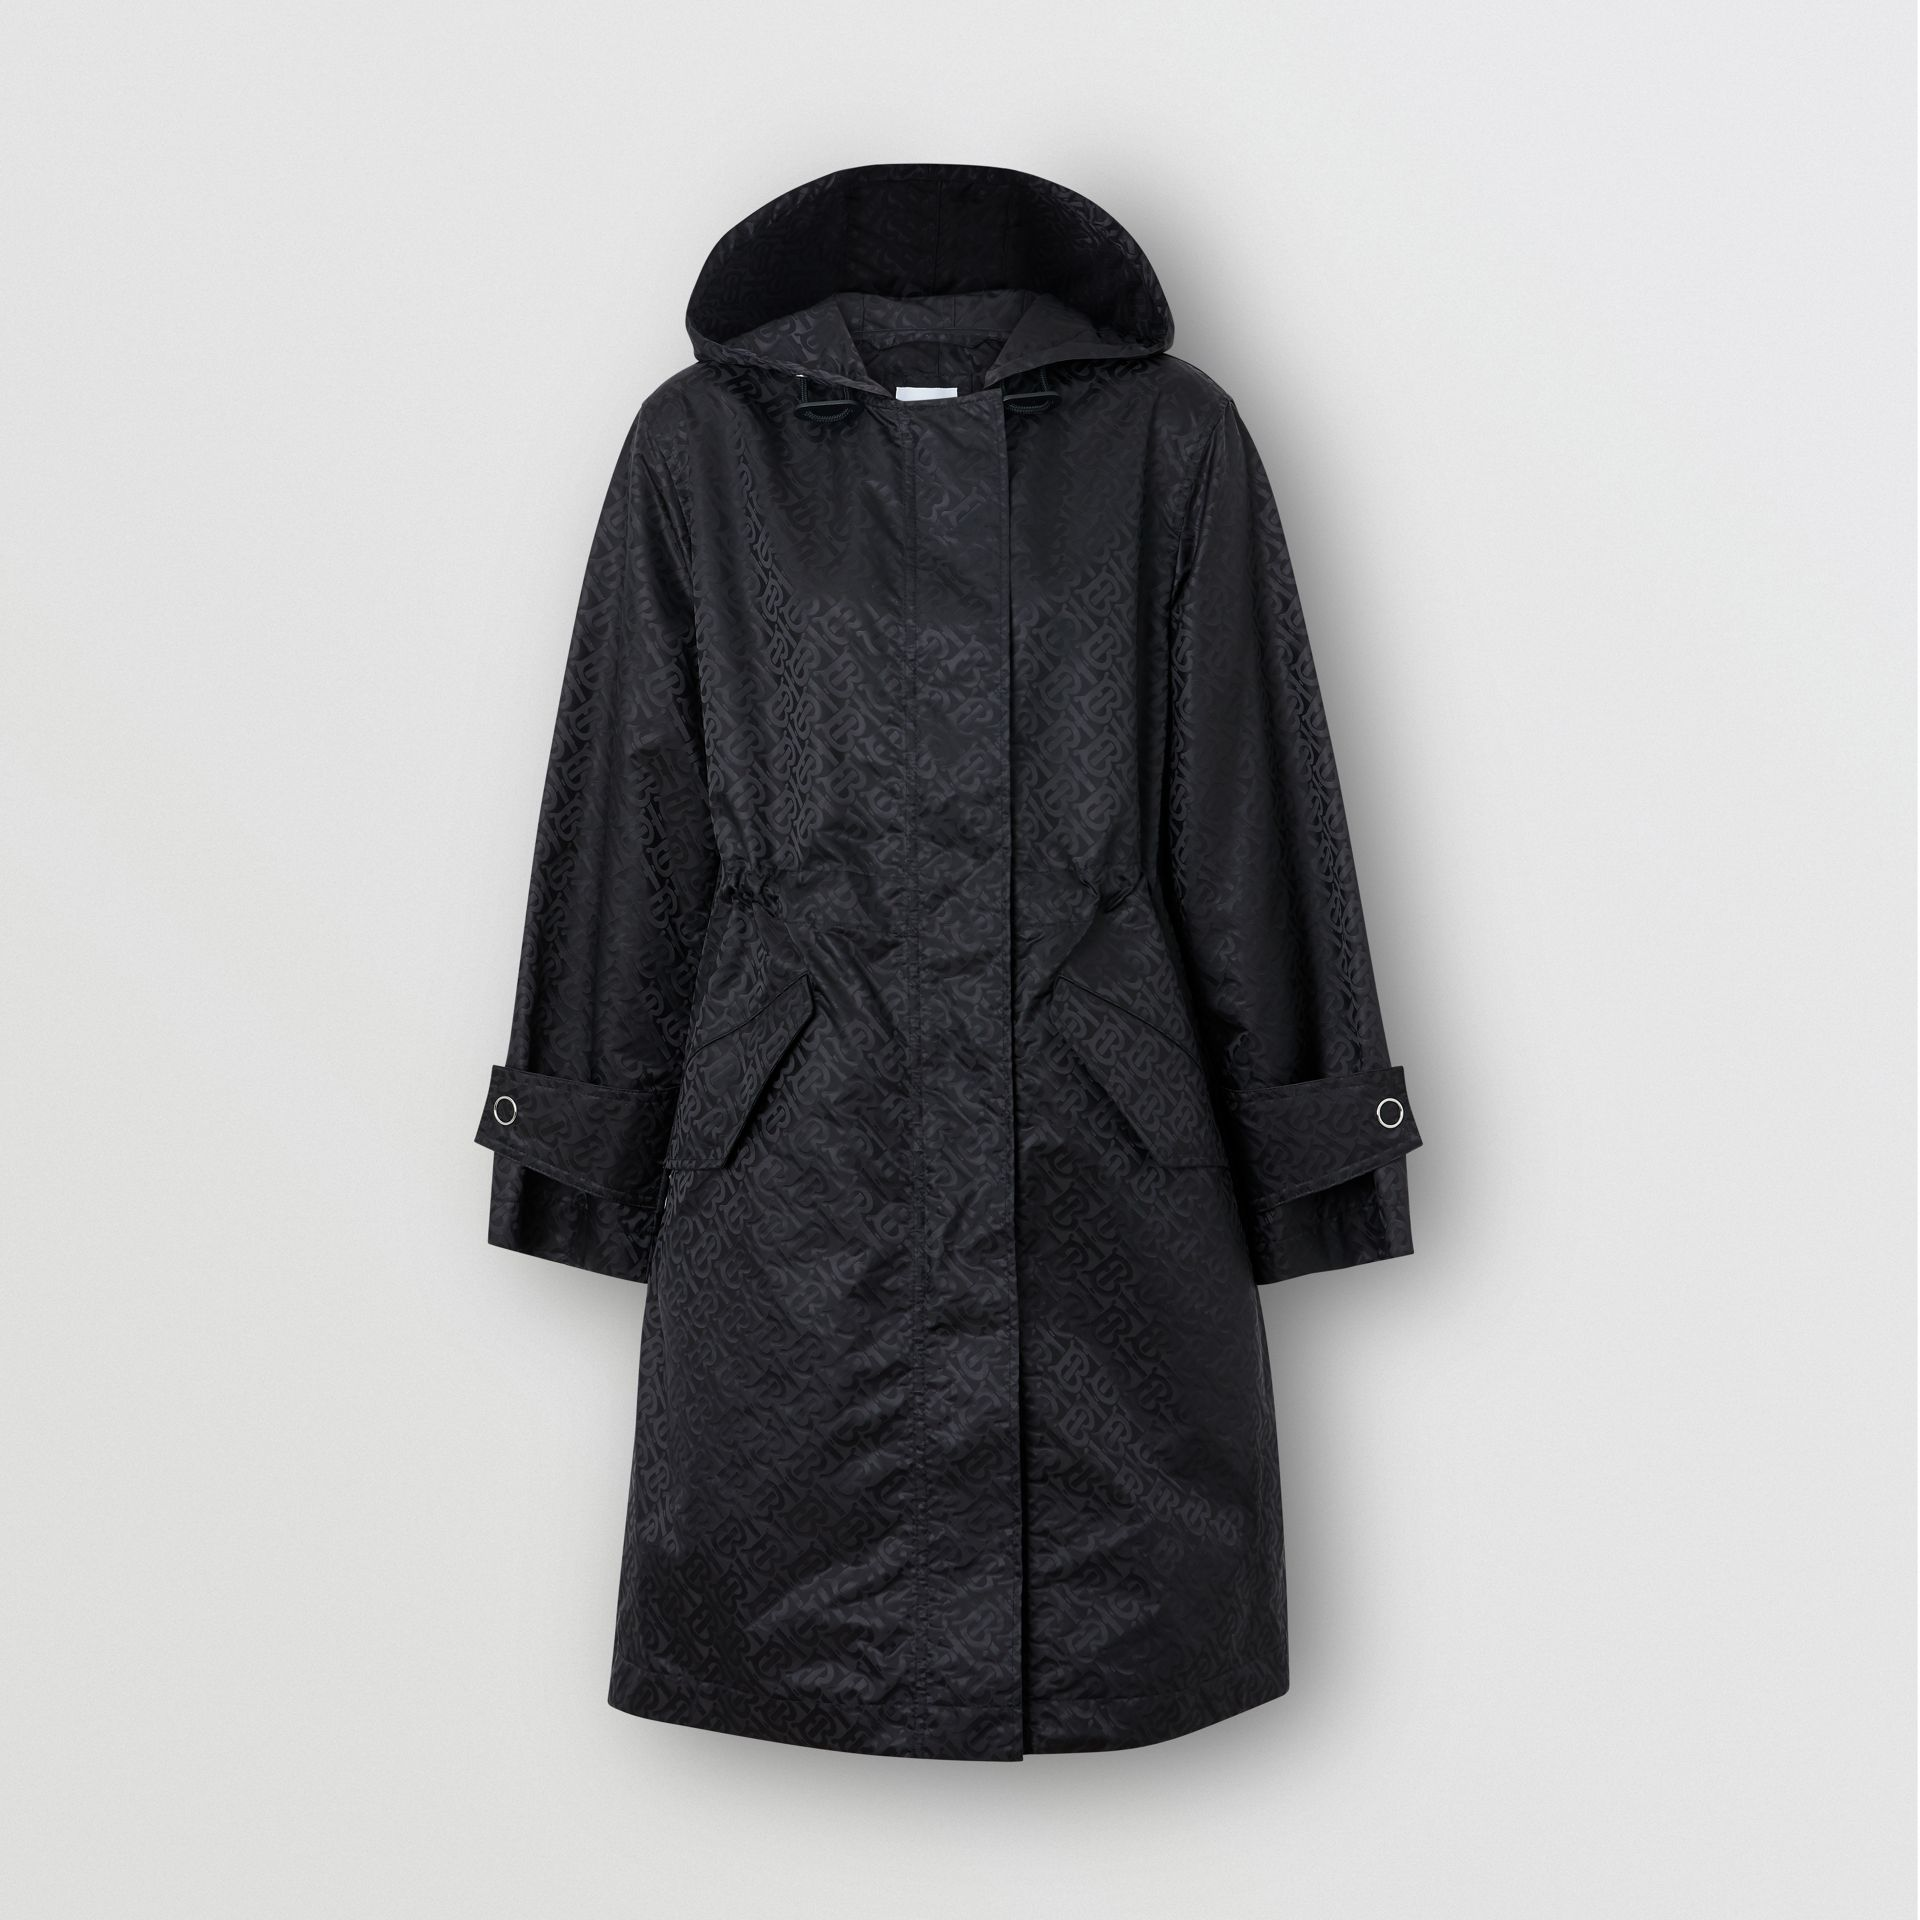 Monogram ECONYL® Jacquard Hooded Parka in Black - Women | Burberry United Kingdom - gallery image 3